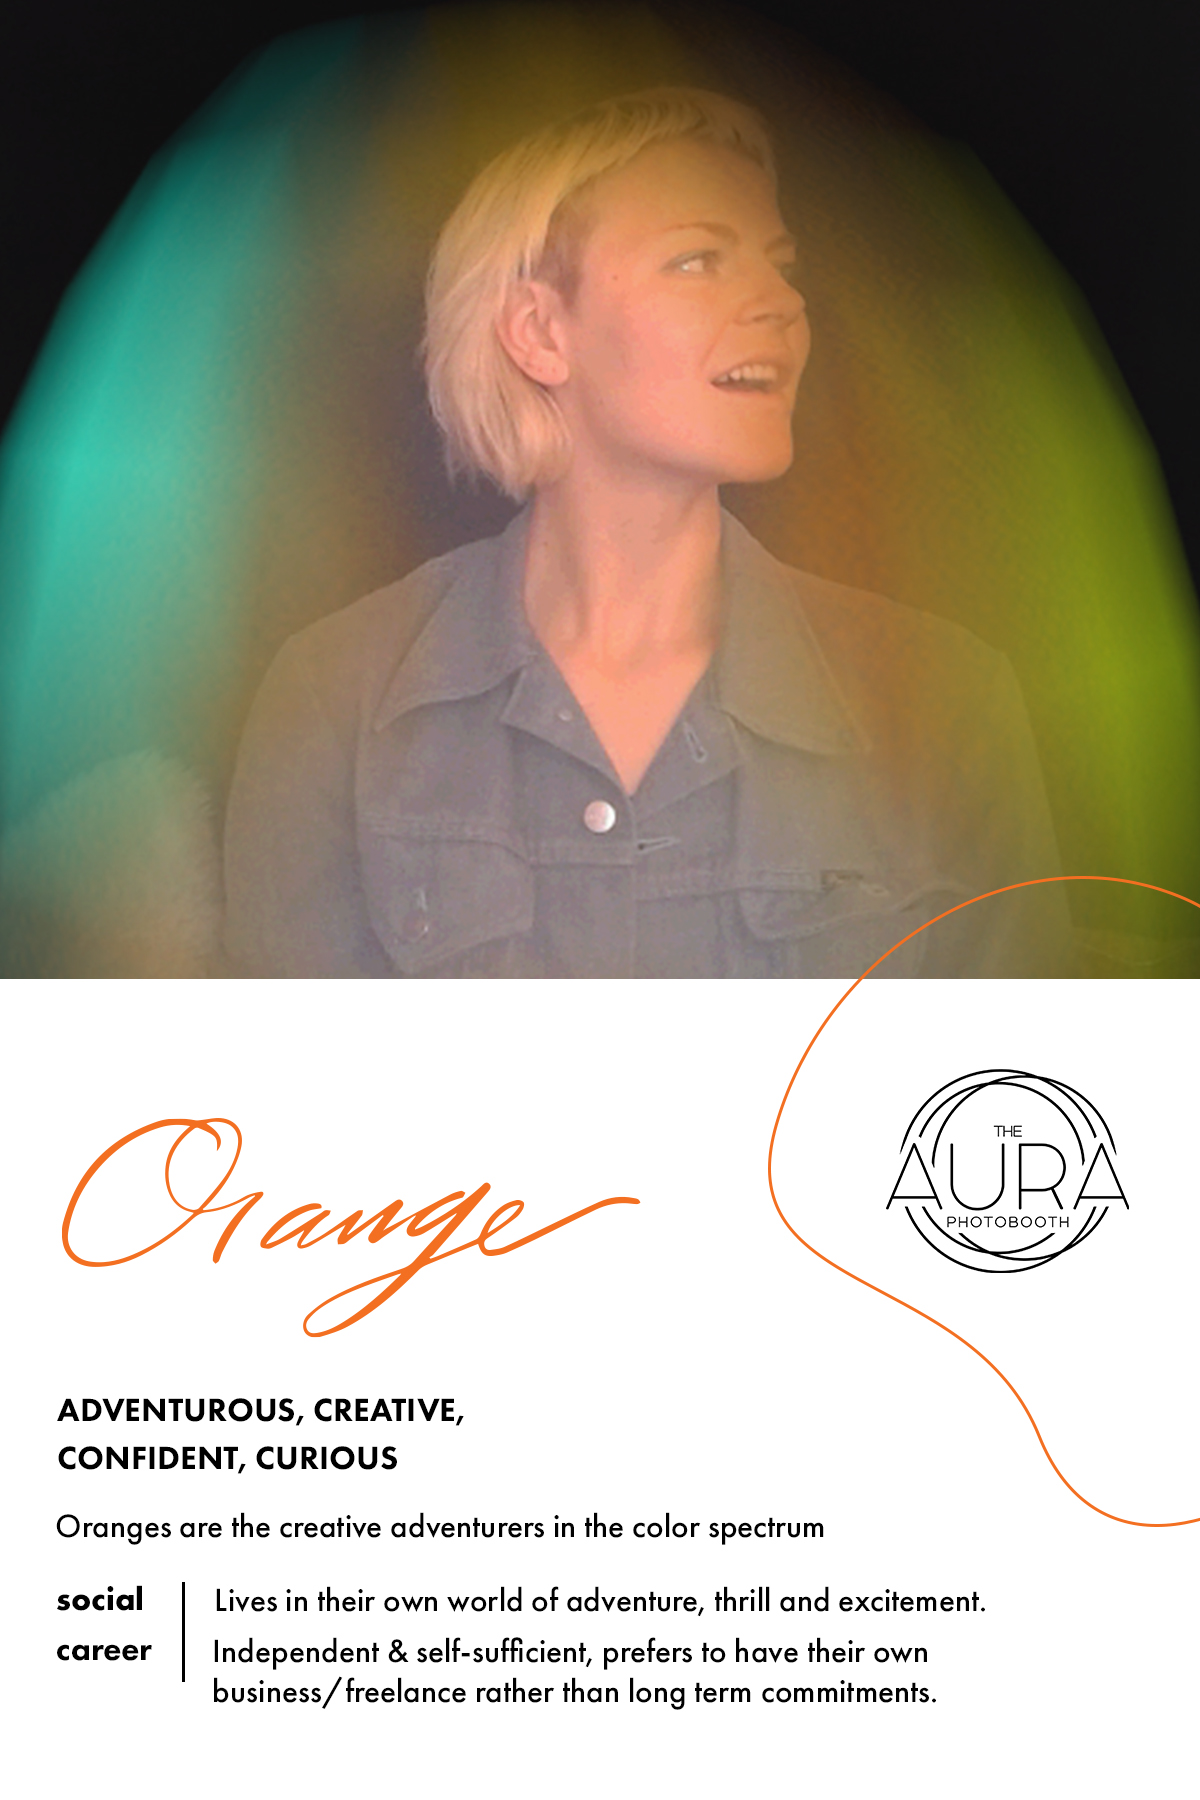 Orange Aura Reading | The Aura Photobooth